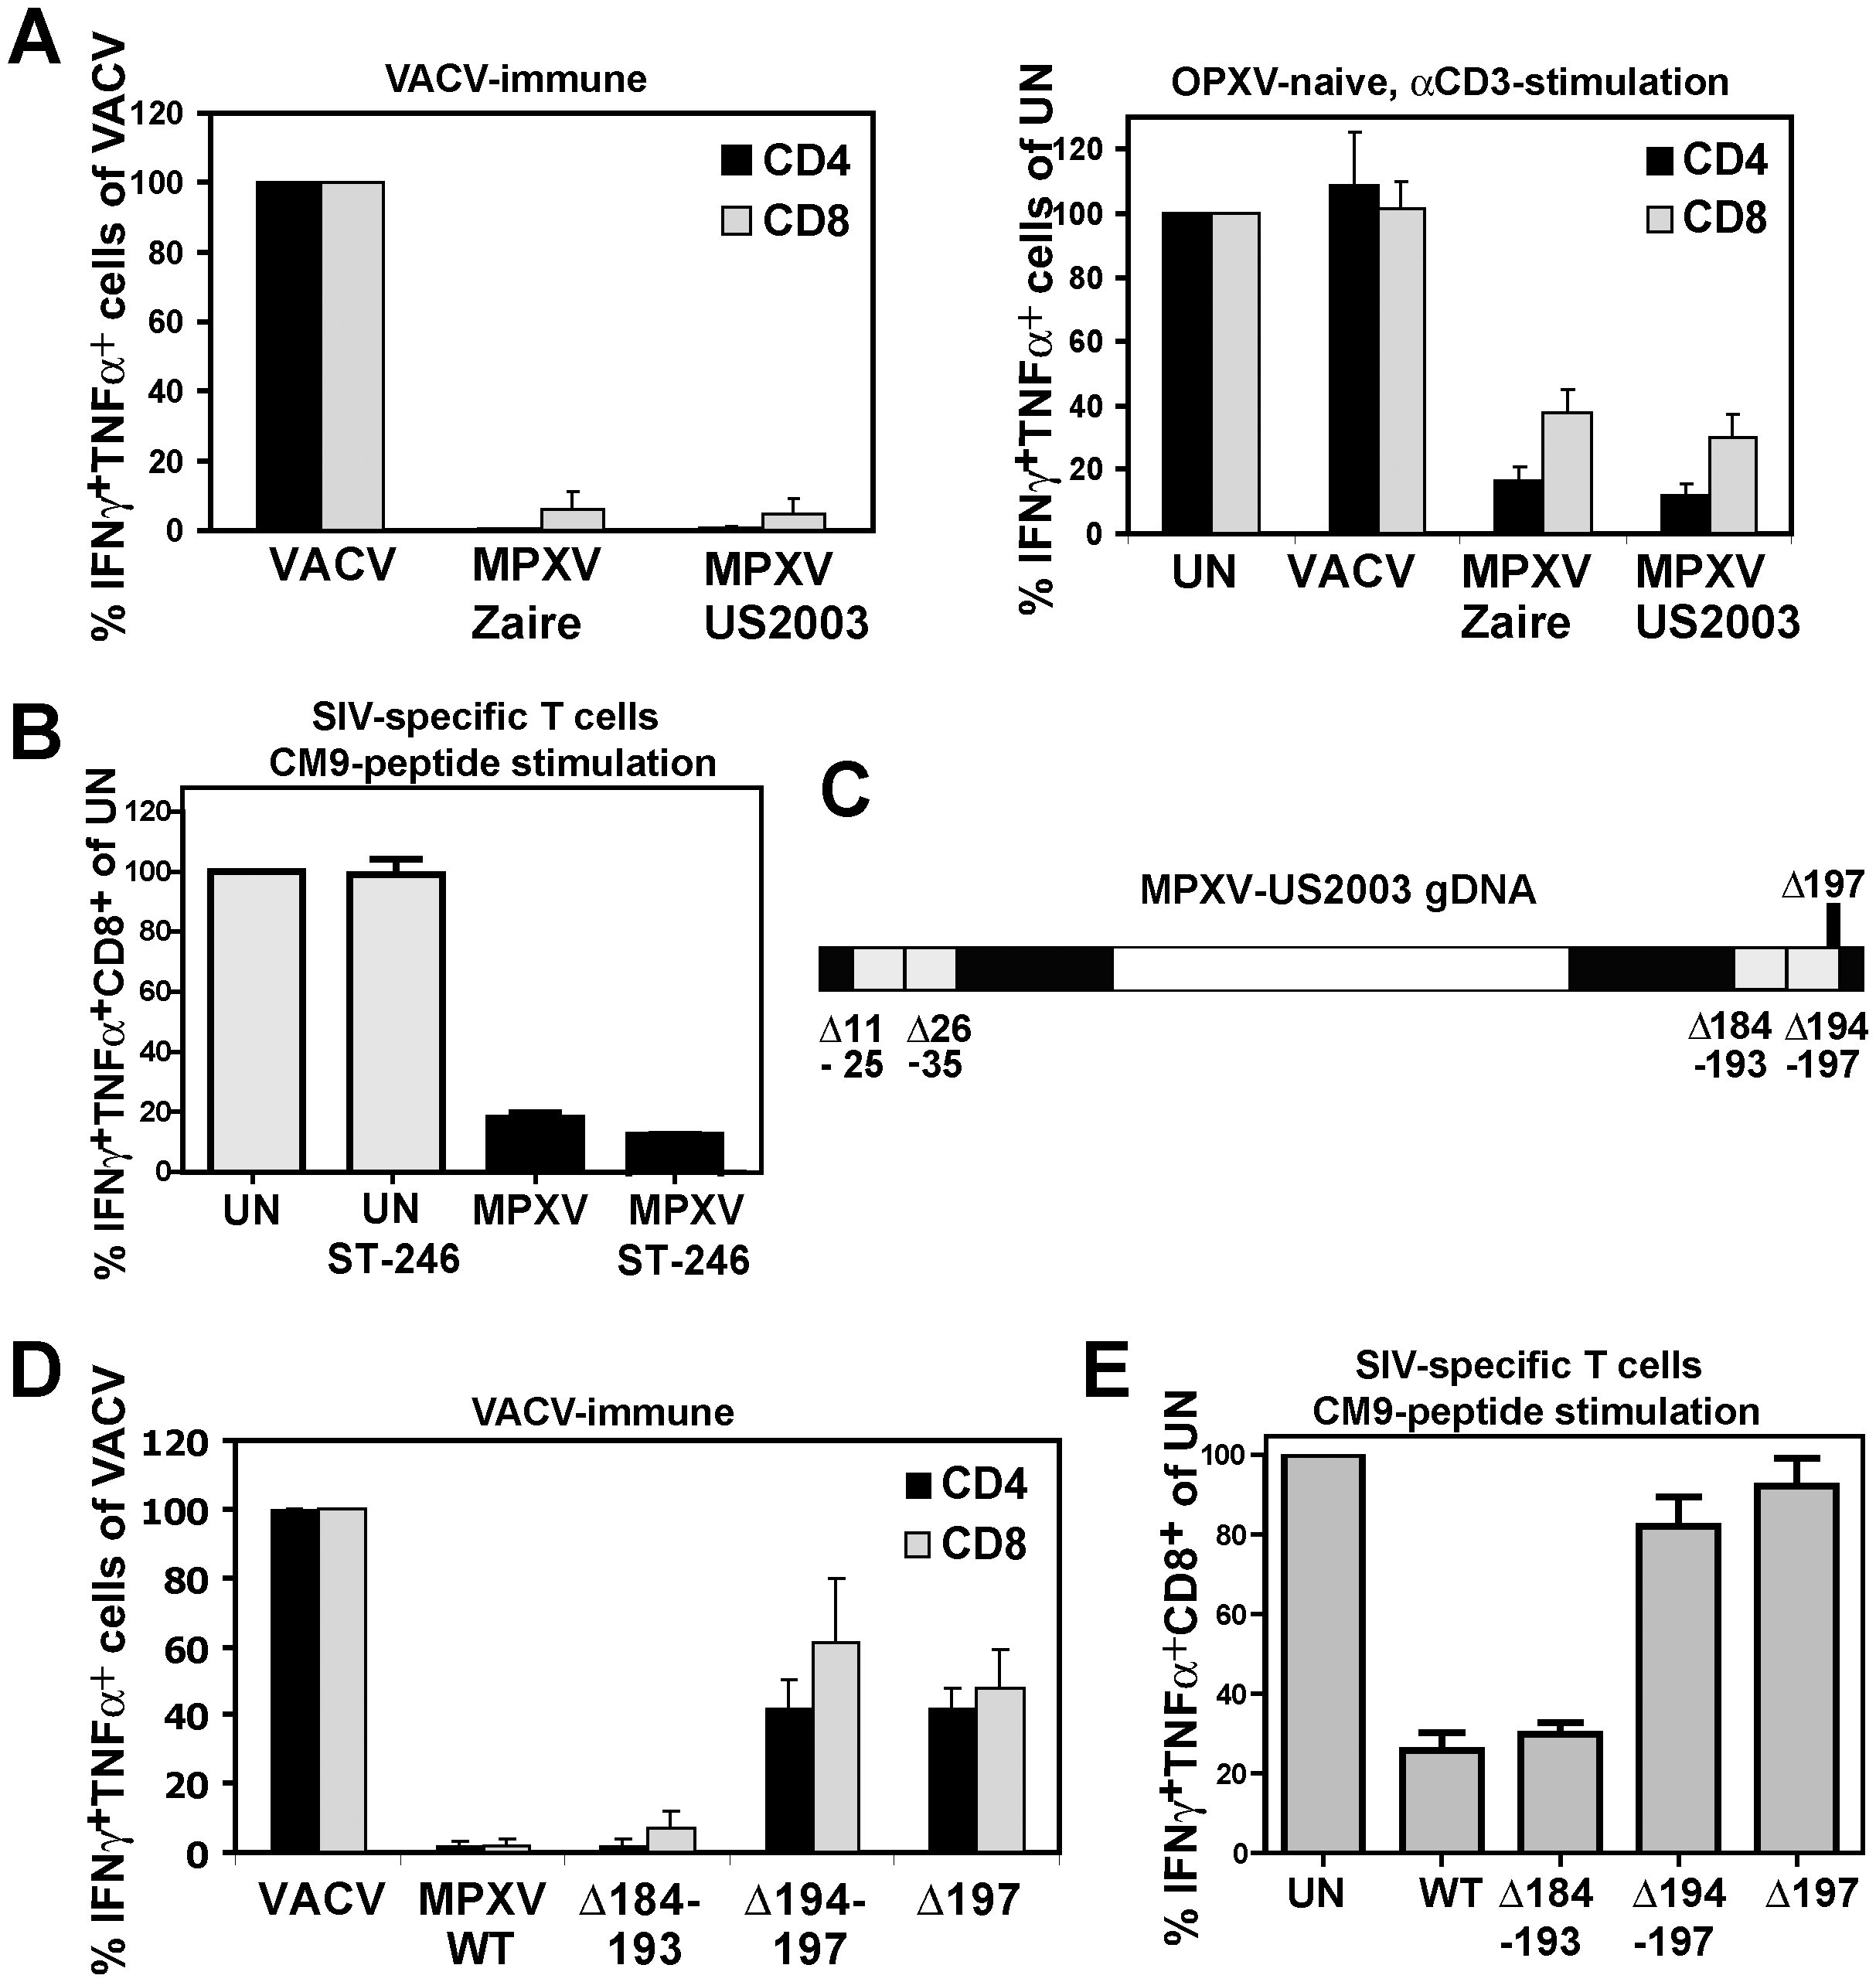 MPXV197 is required for T cell inhibition by MPXV.